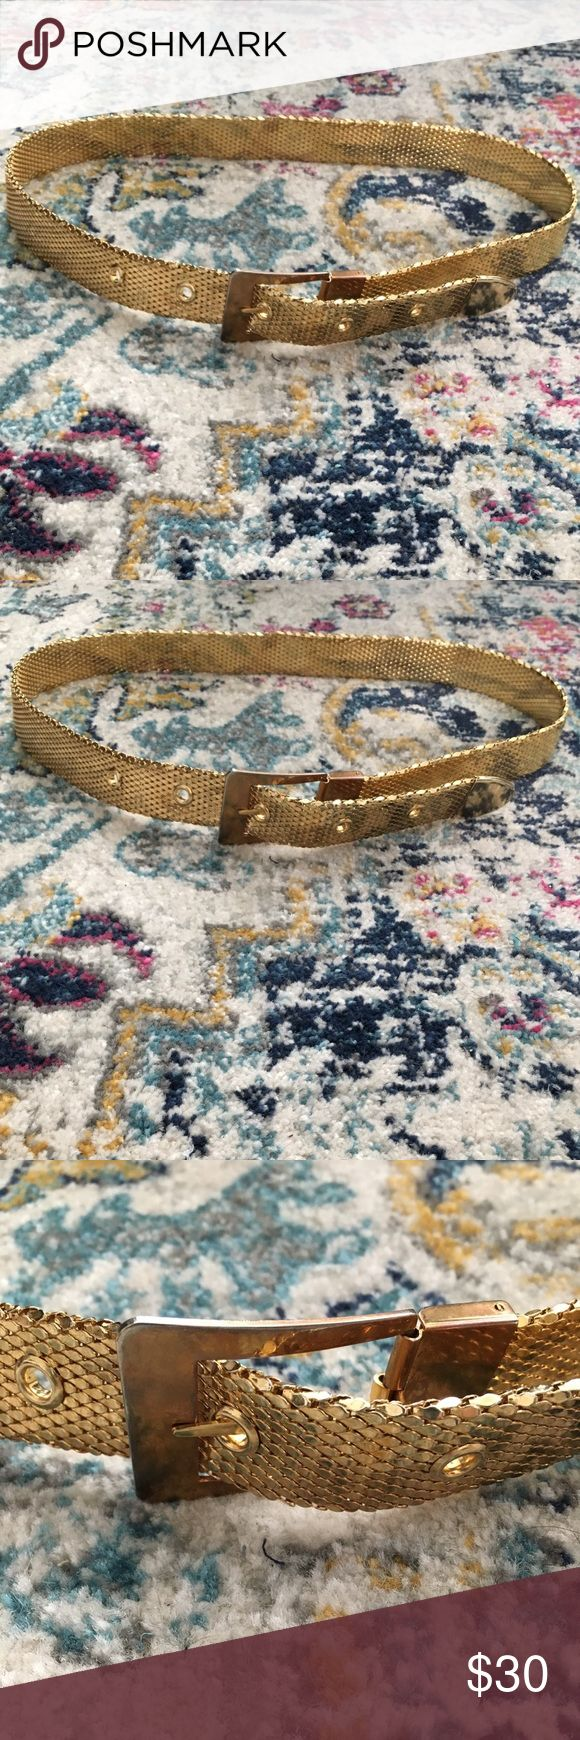 """Vintage Snakeskin Scale Gold Metal Belt M Beautiful vintage piece that needs a new home! Textured metal belt with Snakeskin motif. Rectangular buckle with belt loops for adjusting. Wear over a dress as a fun accent piece or use with your fave jeans! Some turning of color on buckle. Over 36"""" in total length. Labeling as Medium. This could be worn at hip or waist depending on your size. Vintage Accessories Belts"""